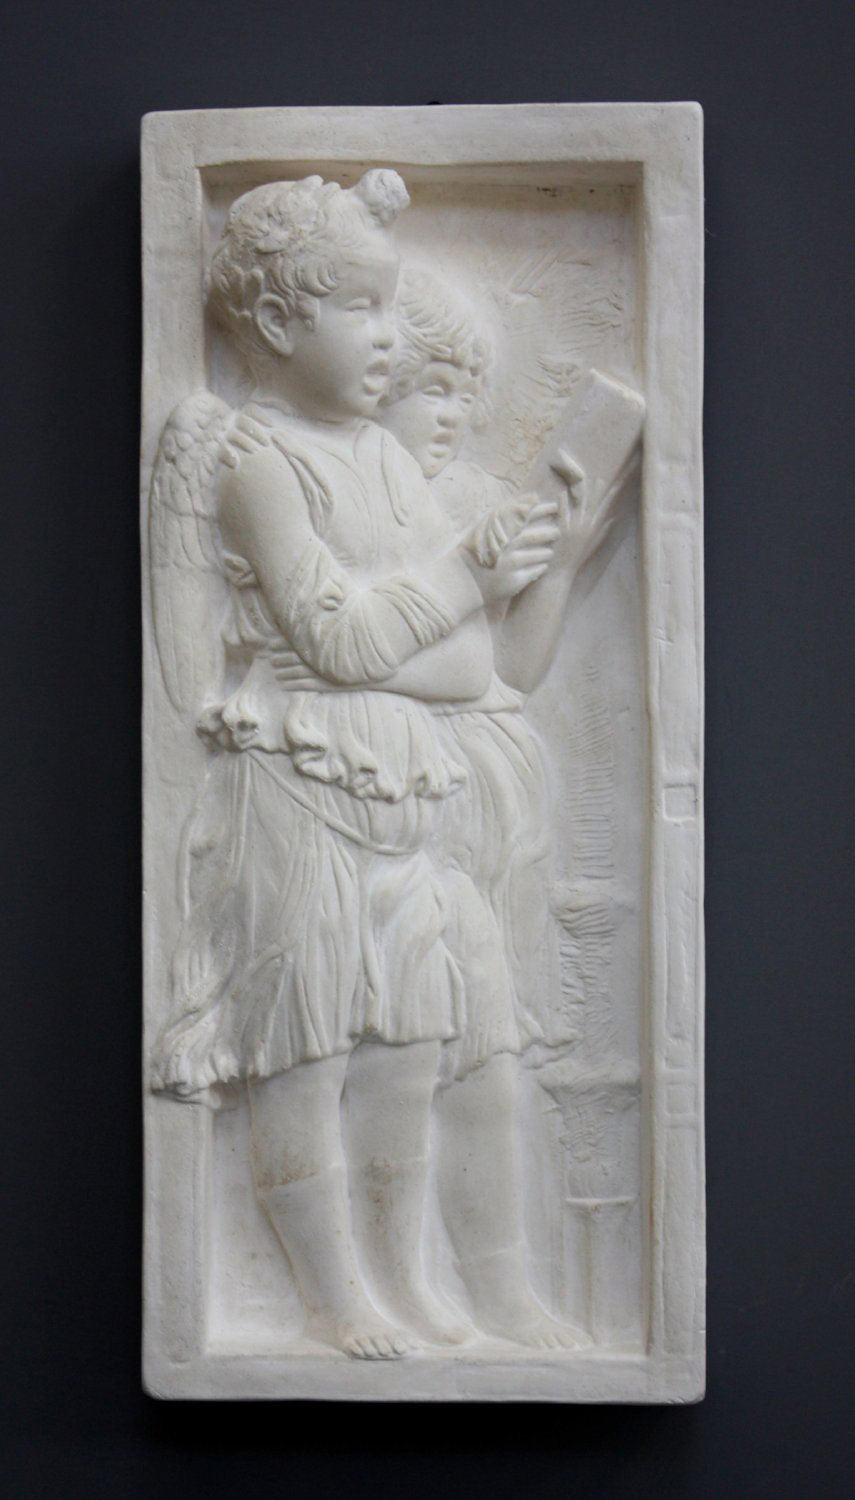 photo of plaster cast relief sculpture with two angels singing from a book on a gray background